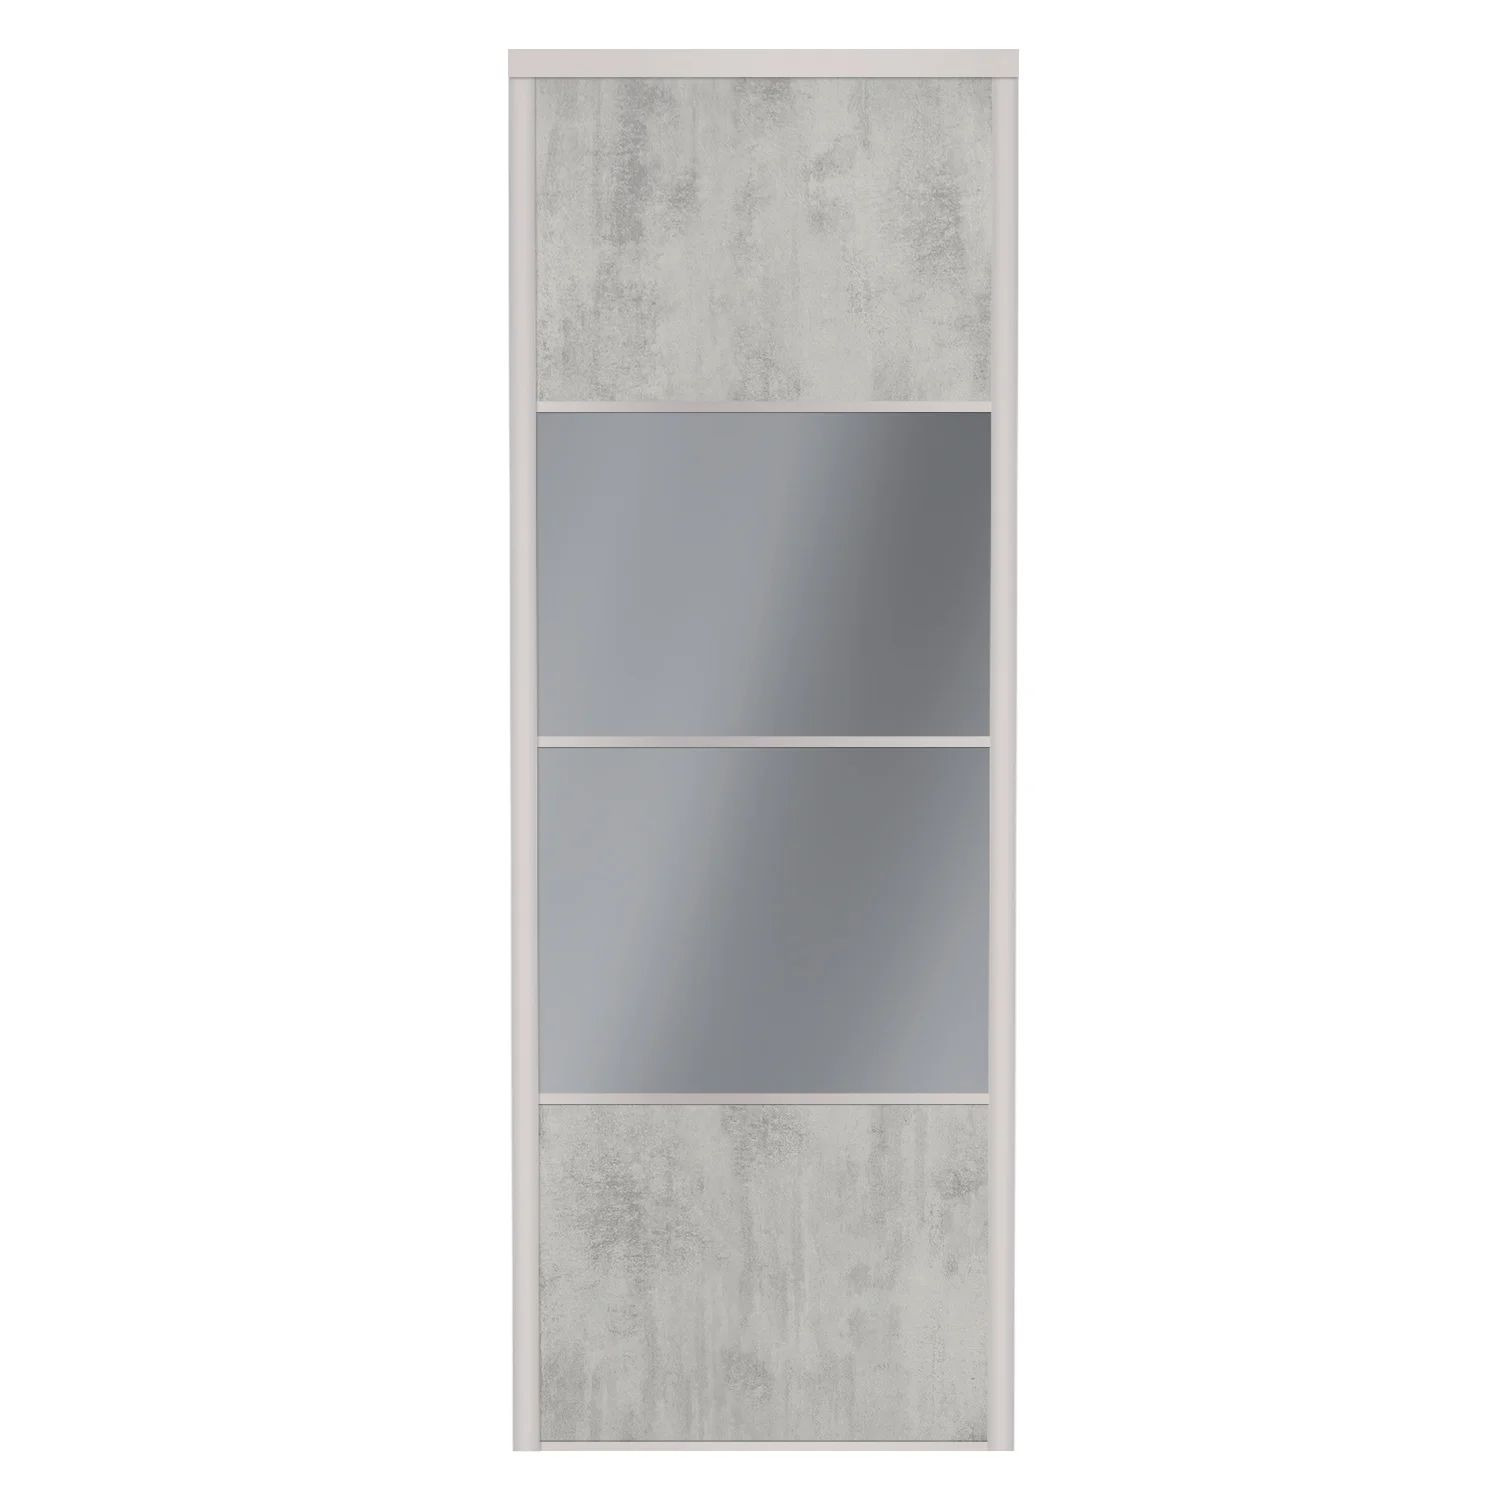 Porte De Placard Coulissante Sur Mesure Spaceo Alliance De 60 1 A 80 Cm Leroy Merlin